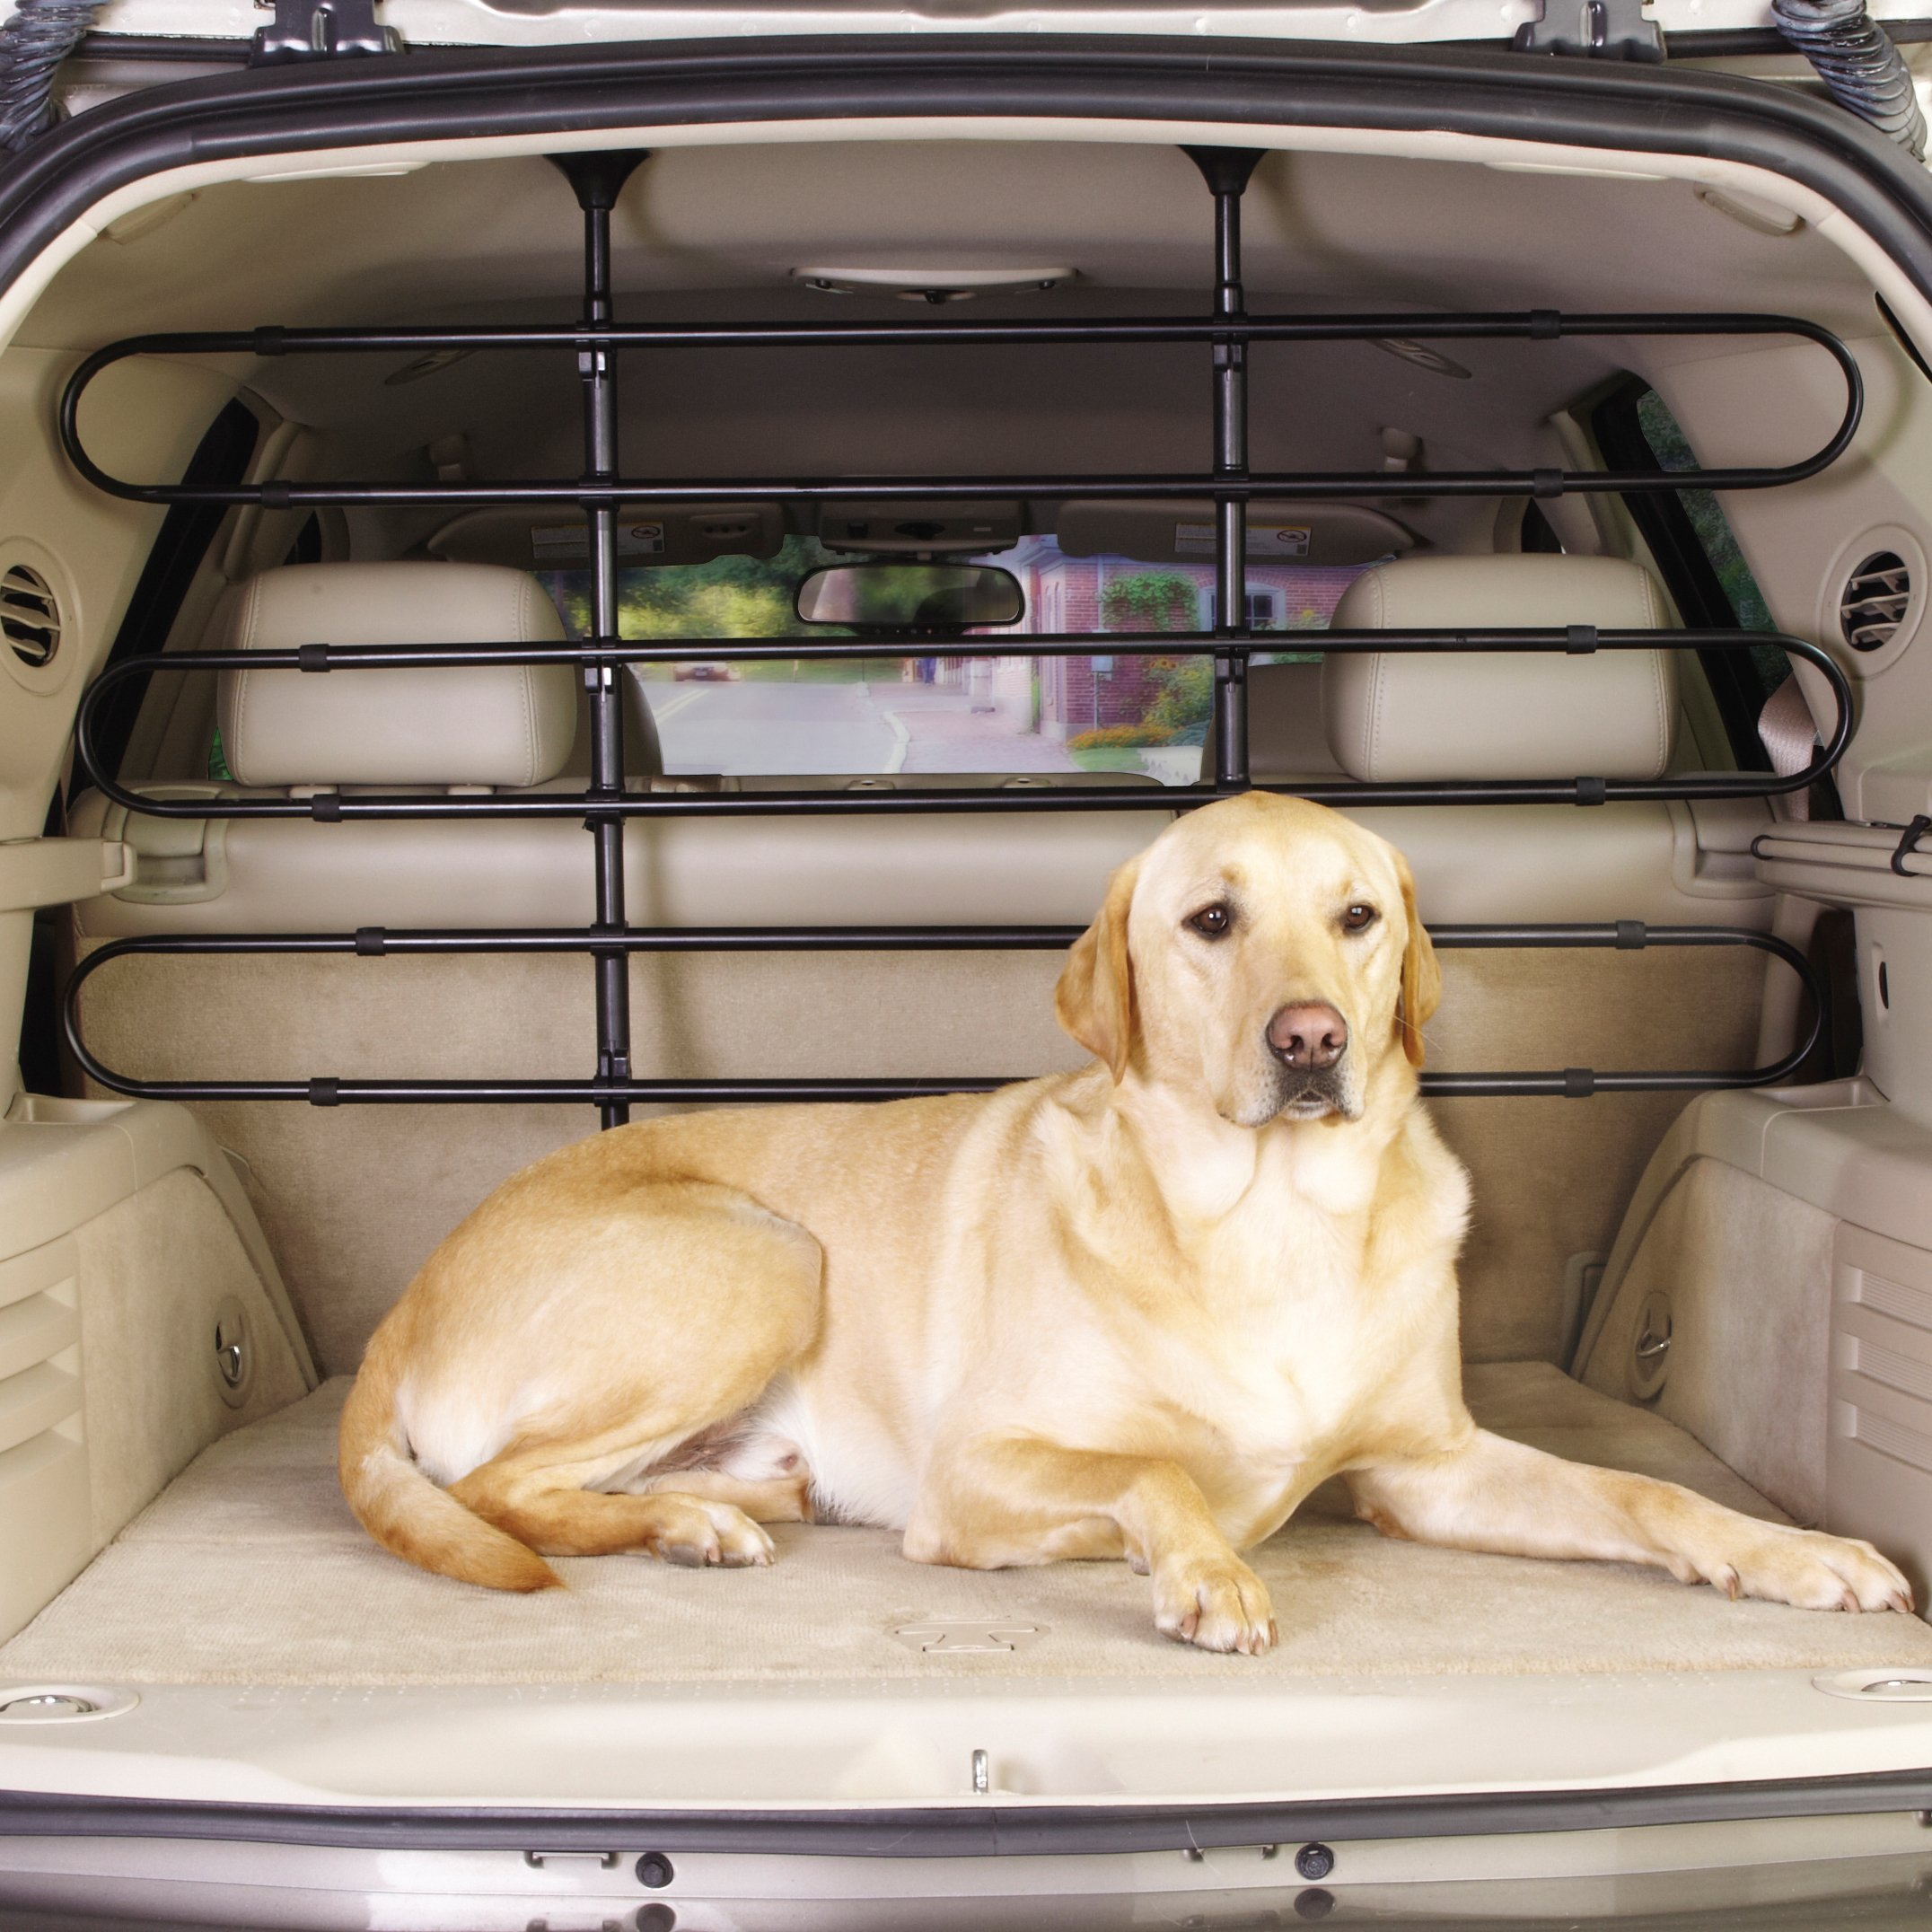 Guardian Gear Vehicle Pet Barrier, Strong, Sturdy, Pressure-Mounted, and Heavy-Duty Adjustable Steel Rubber - Black by Guardian Gear